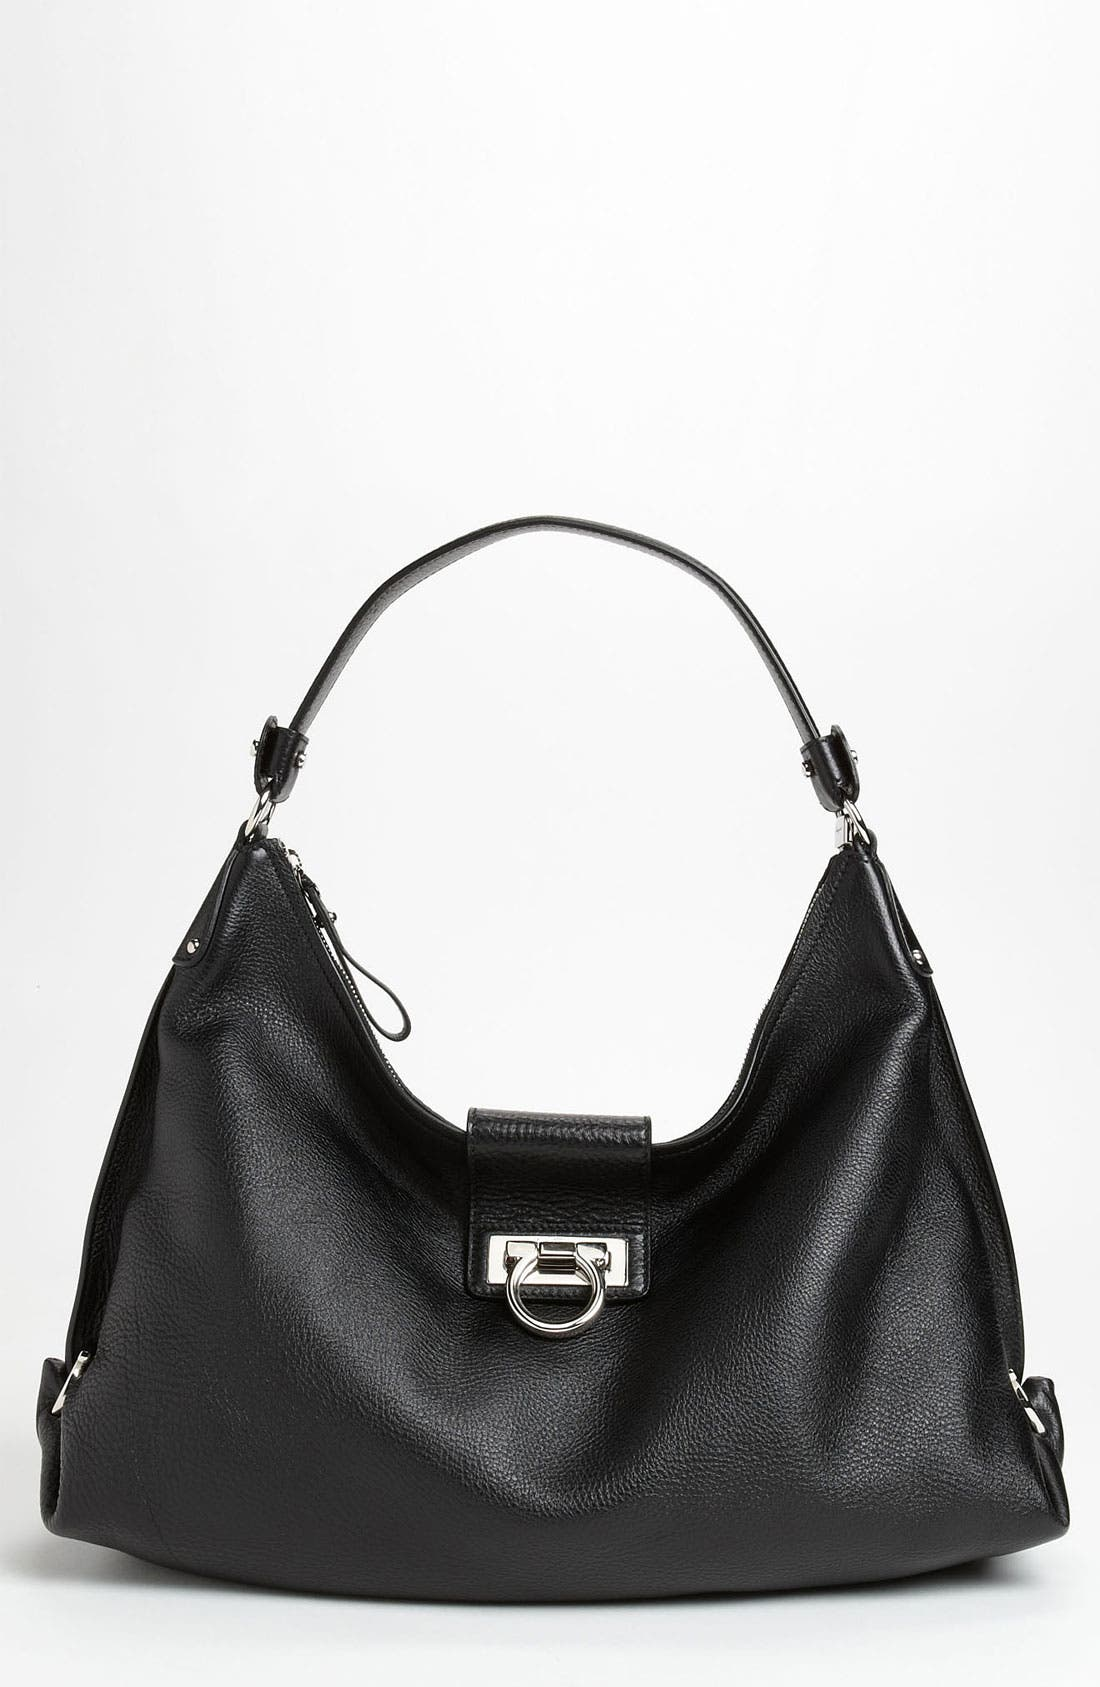 Alternate Image 1 Selected - Salvatore Ferragamo 'New Fanisa' Leather Hobo